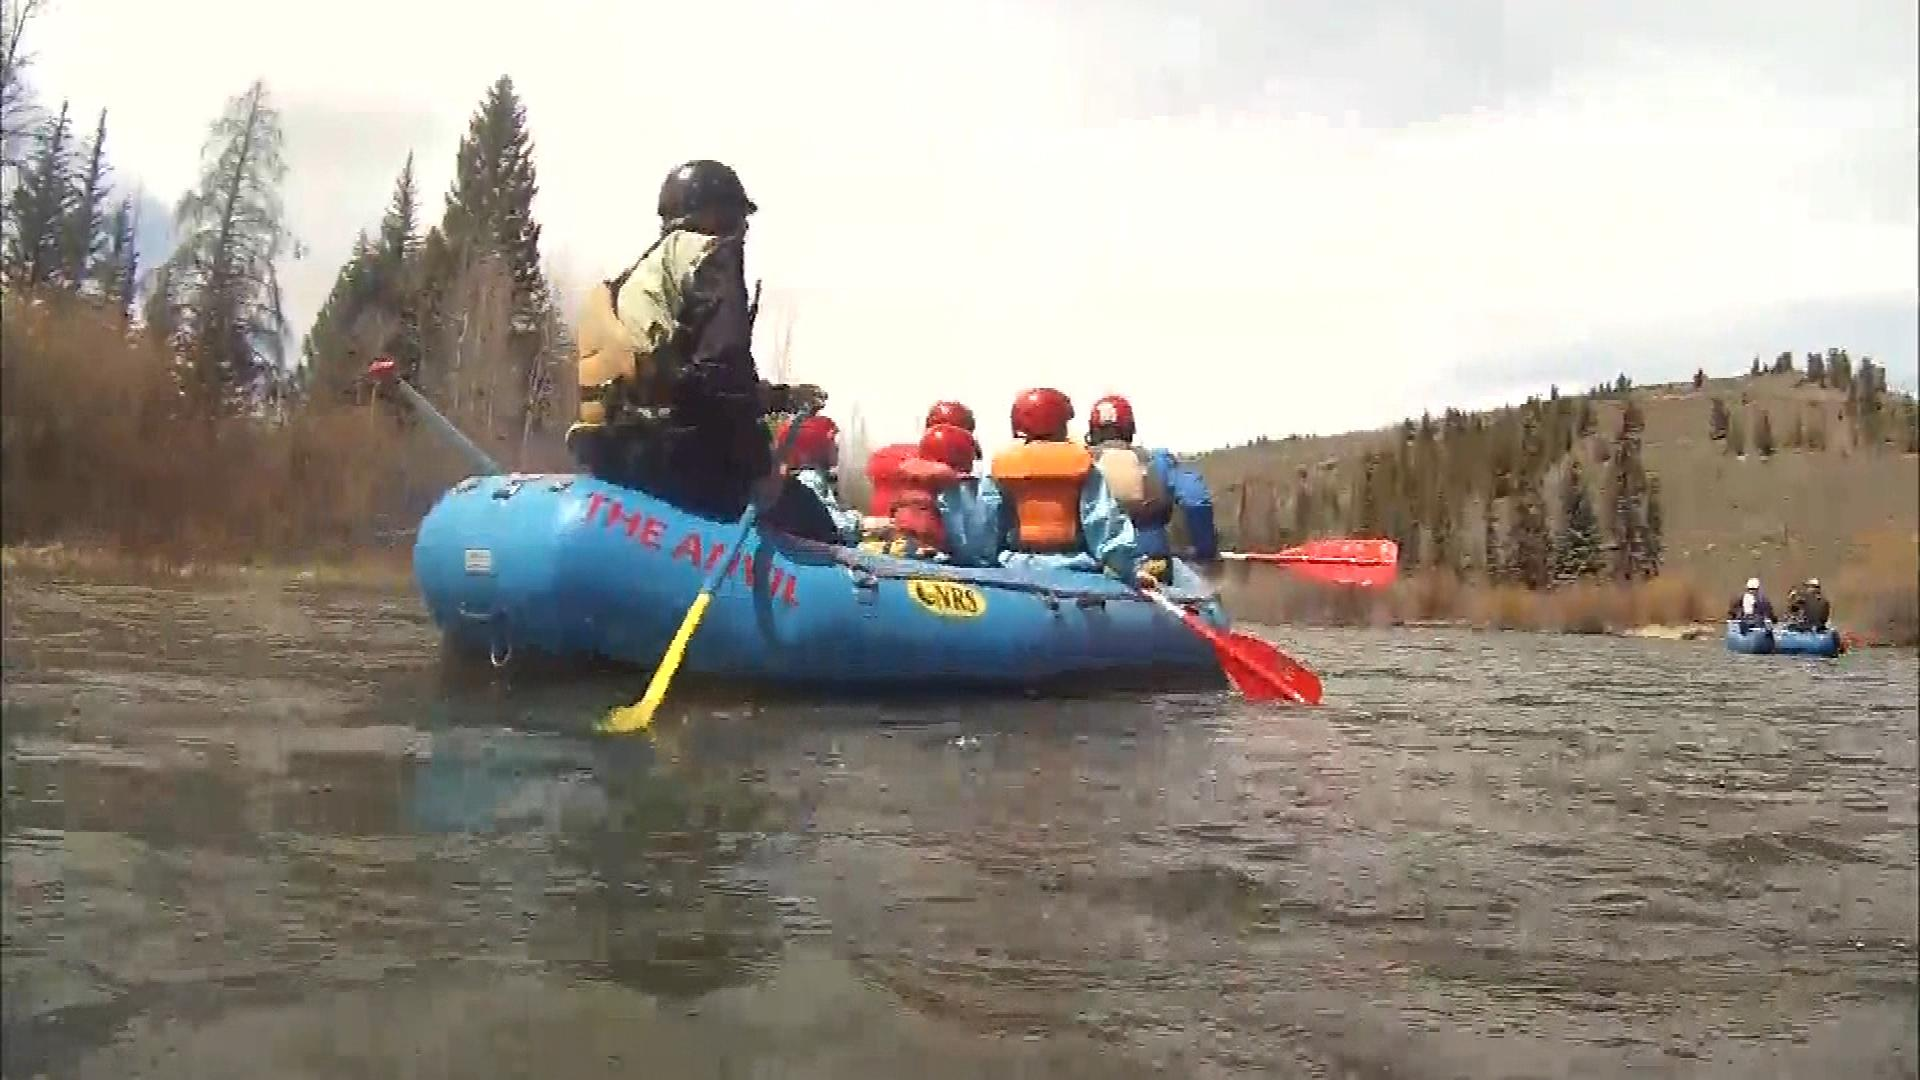 Rafting on the Blue River in April (credit: CBS)